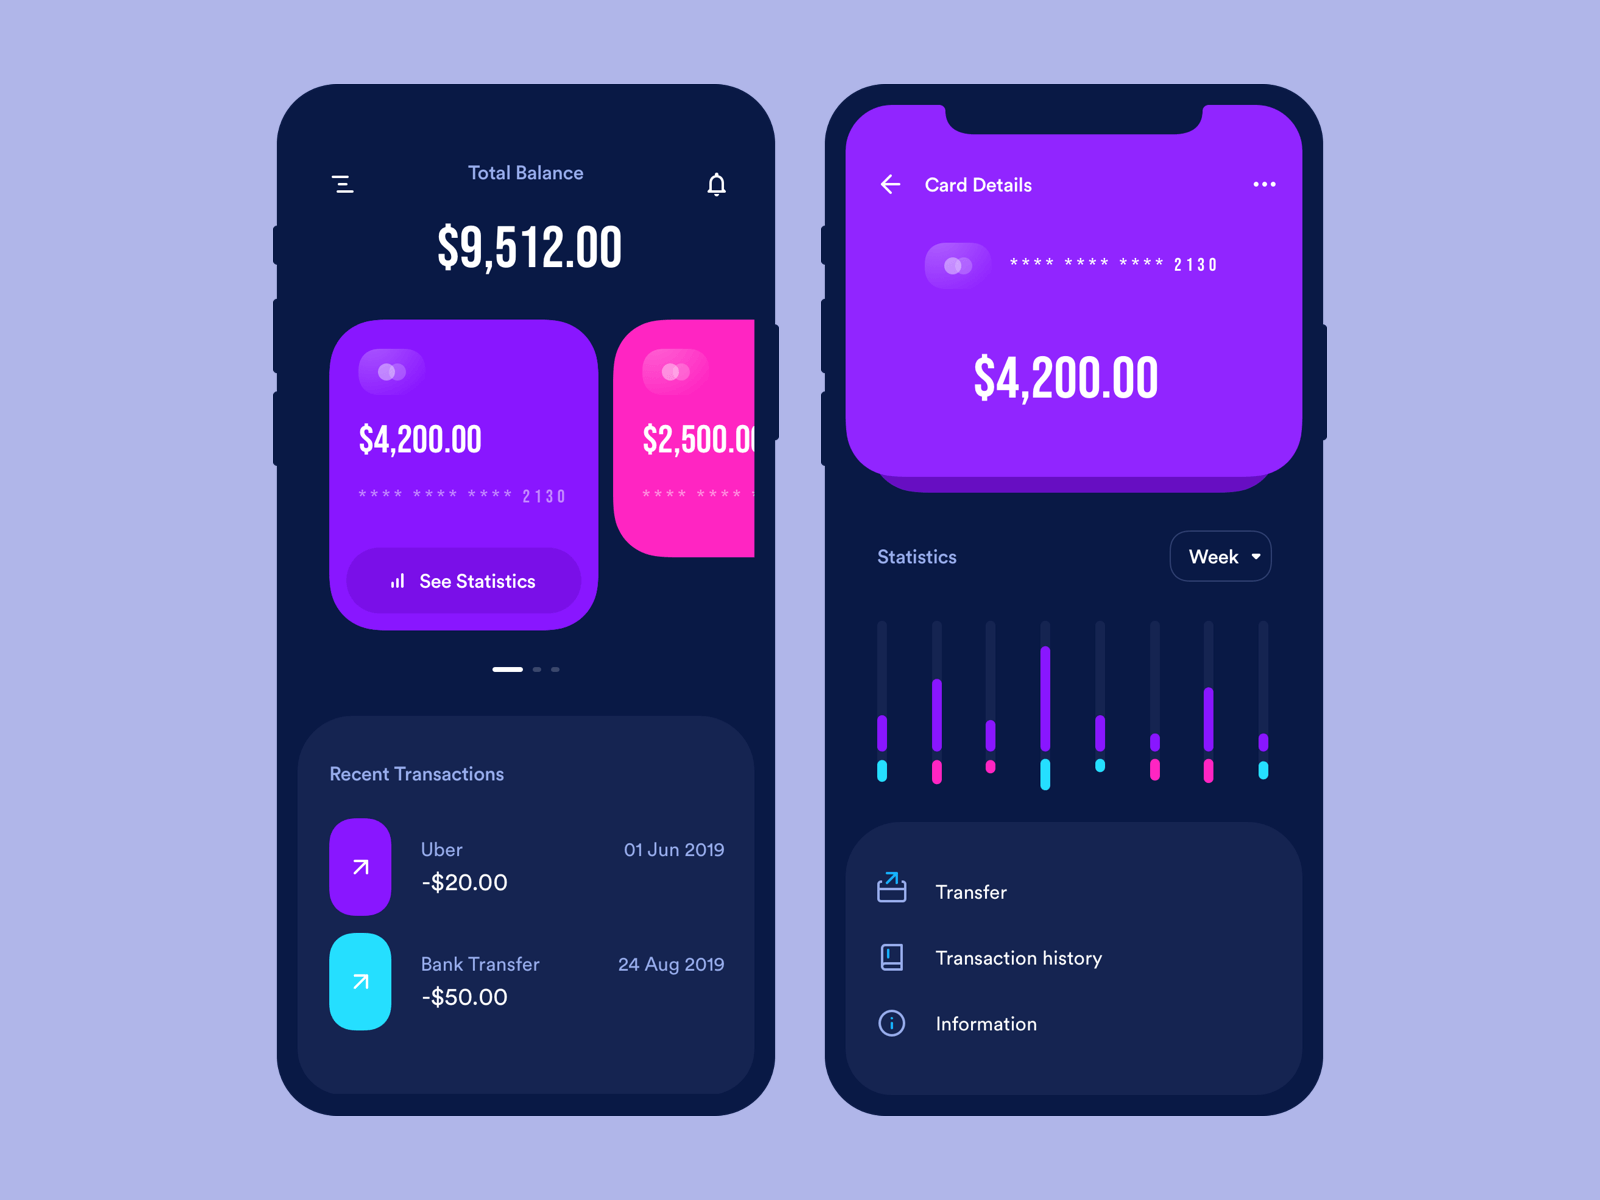 App design for a banking and finance app